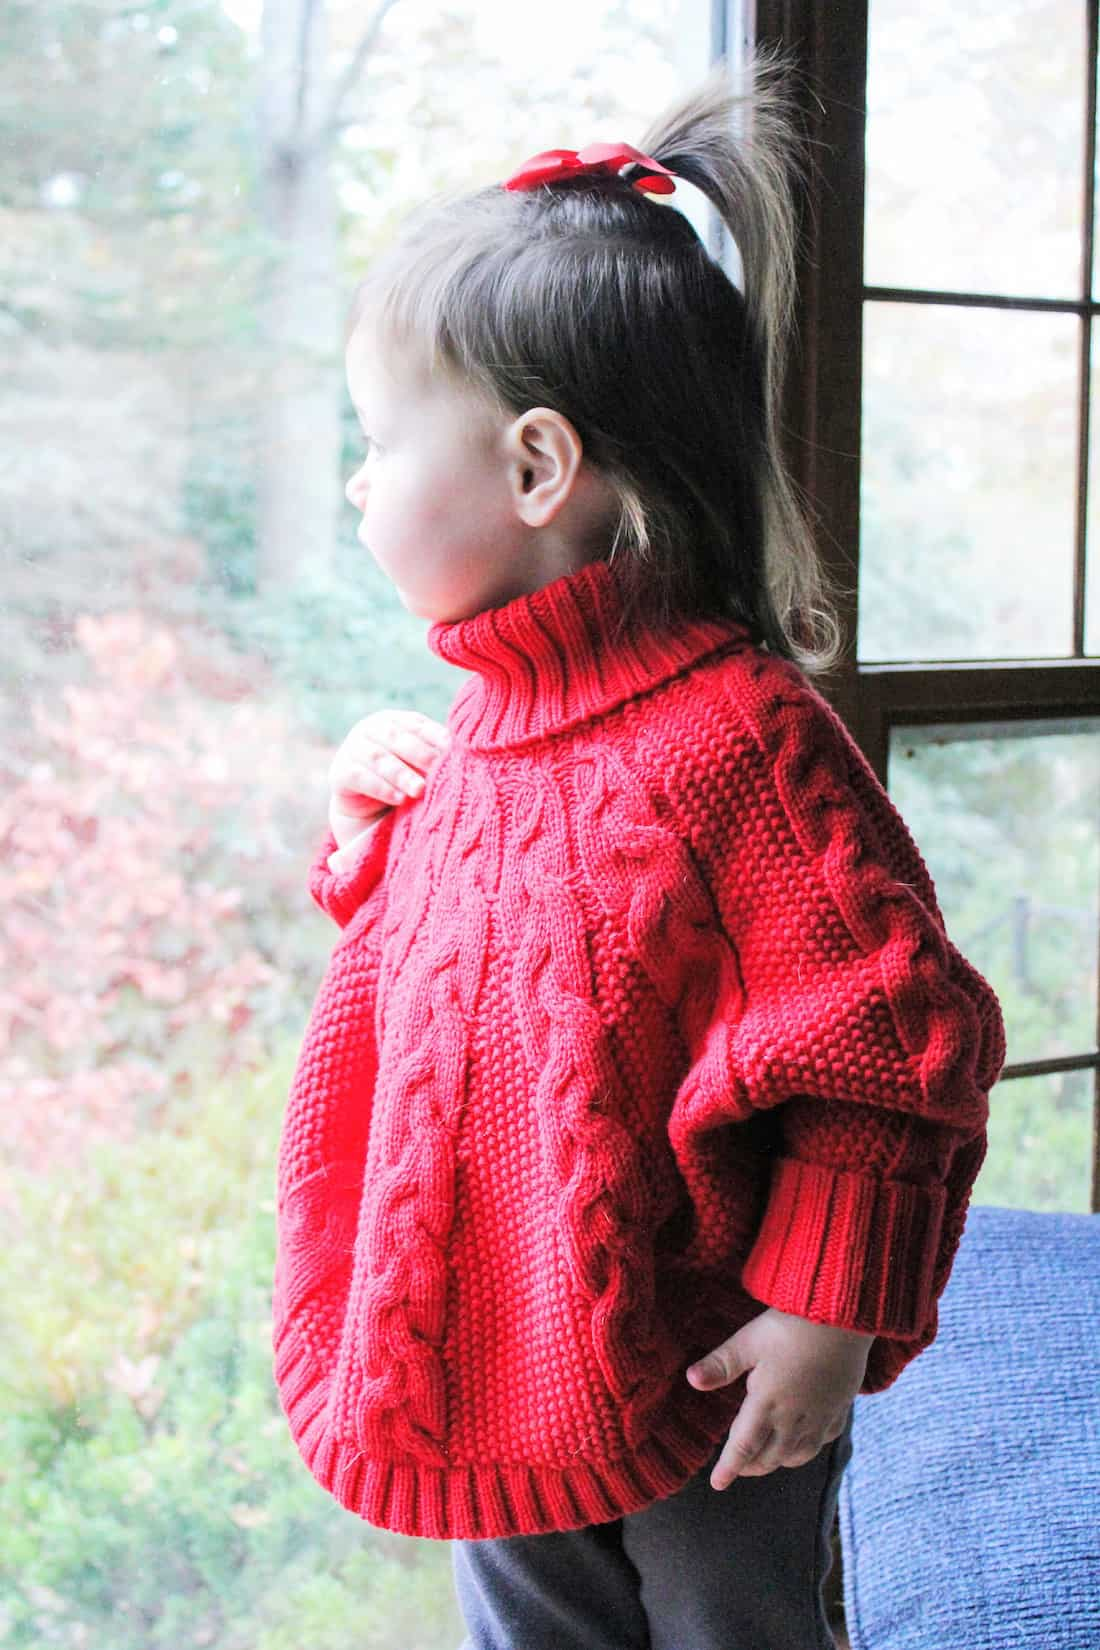 Toddler girl in red holiday sweater looks through window.